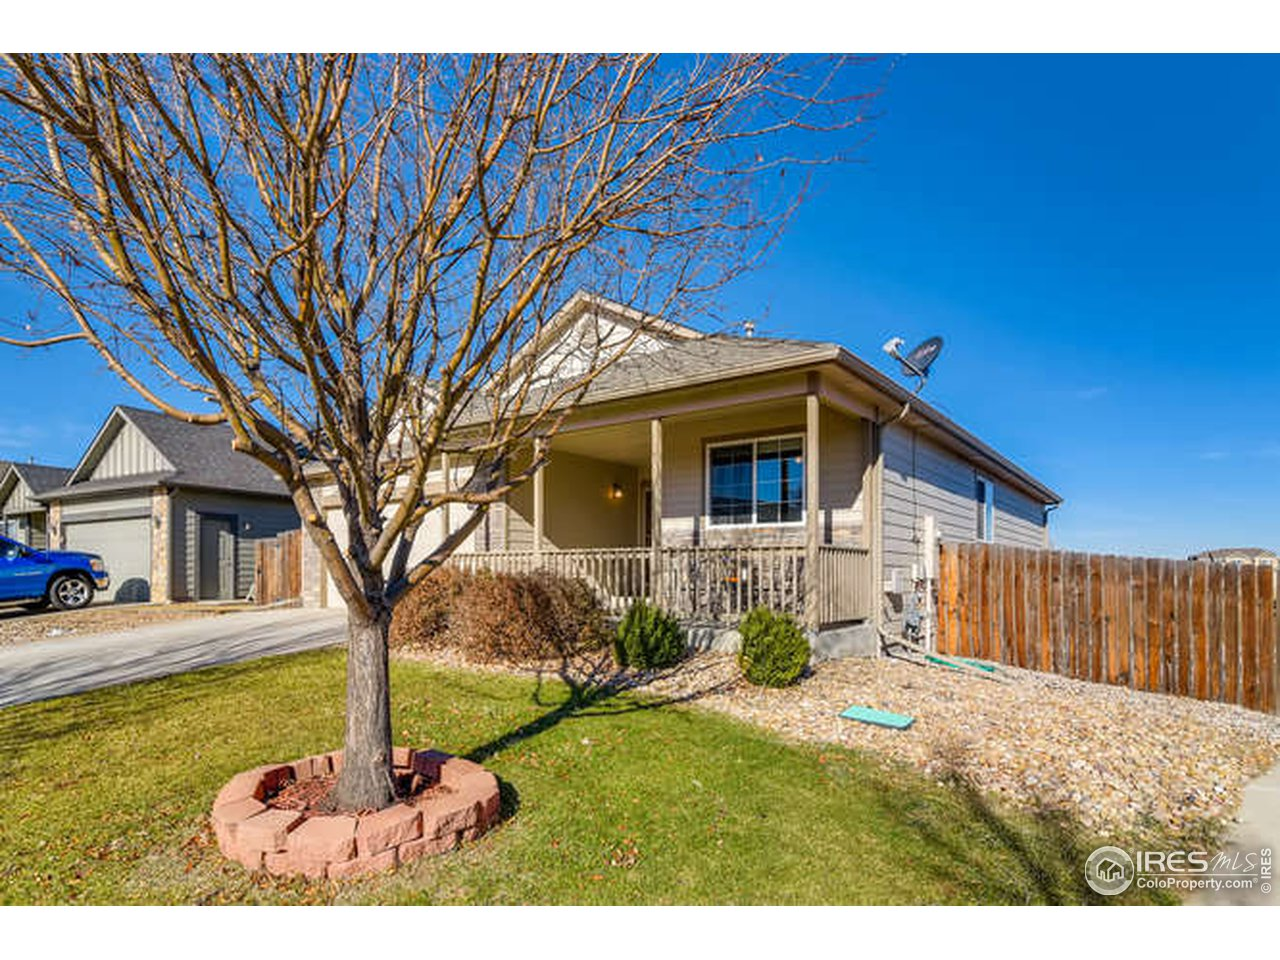 8617 W 17th St Dr, Greeley CO 80634